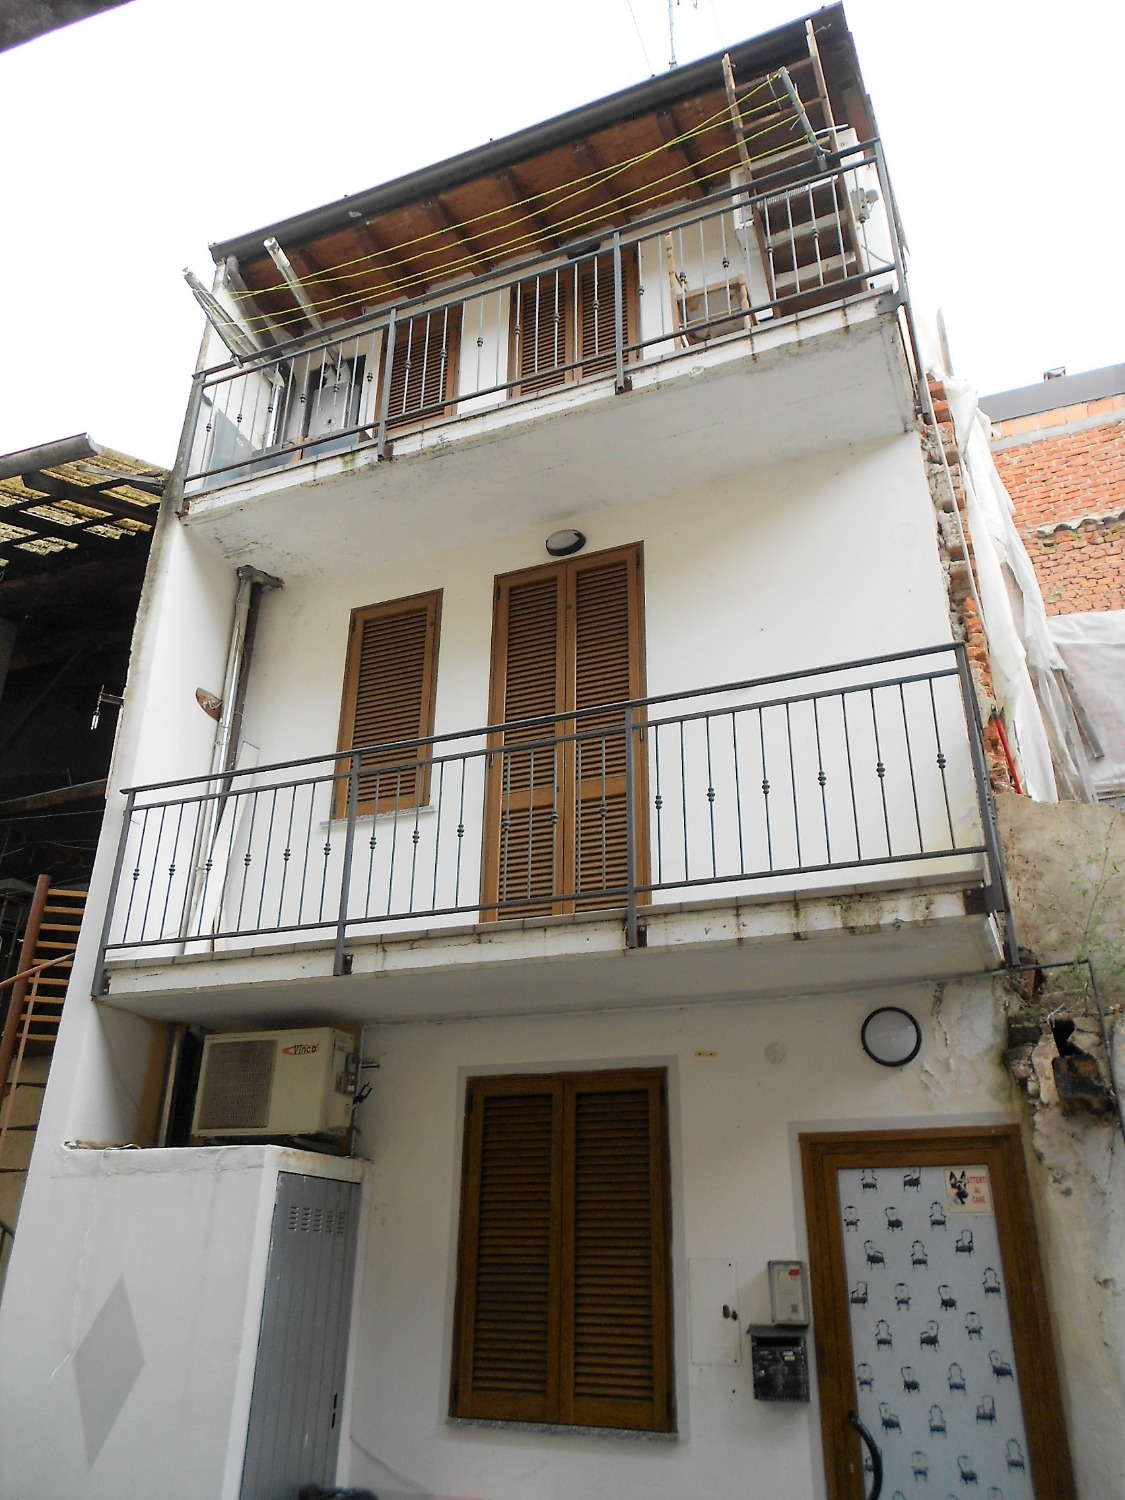 T311 GALLIATE - CASA DI CORTE